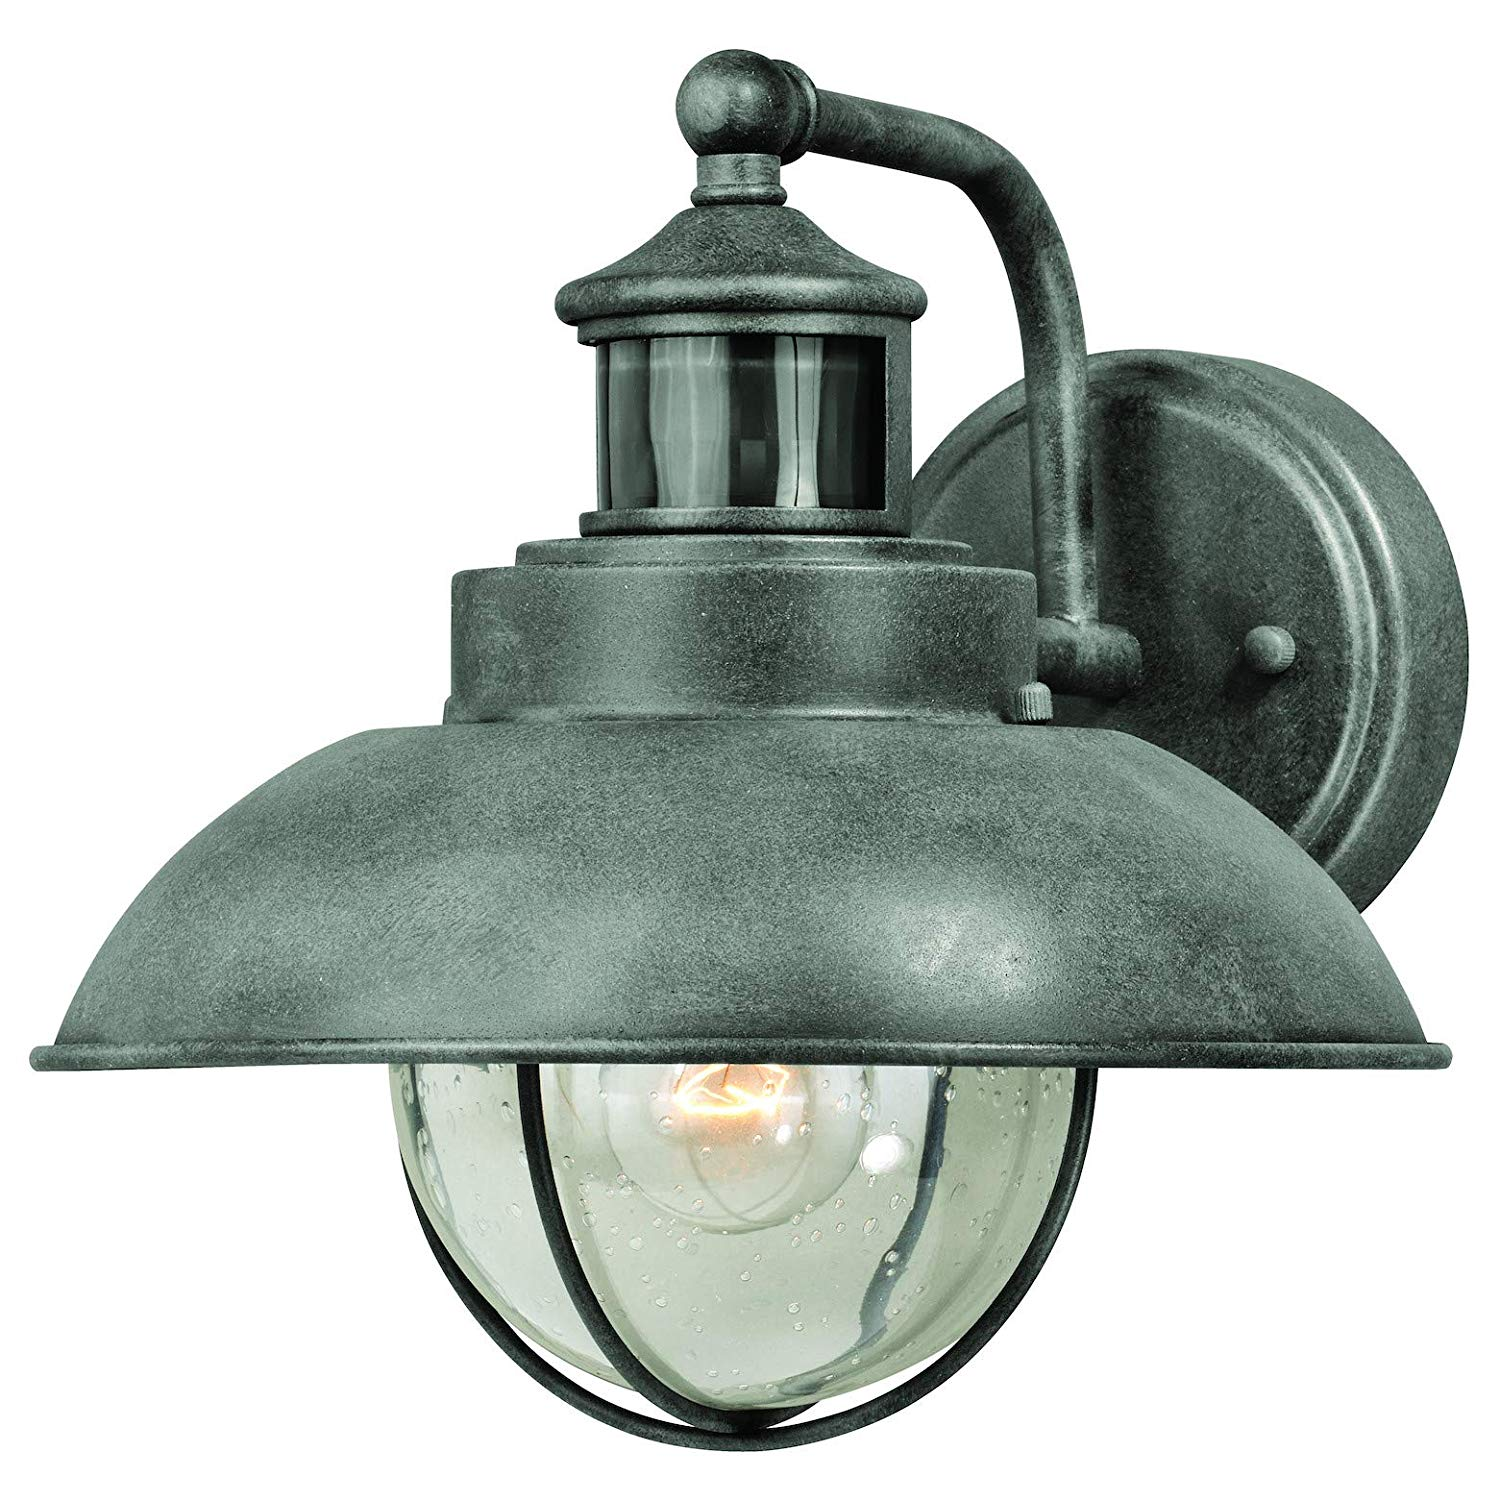 Harwich Dualux 10In. Outdoor Wall Light Textured Gray